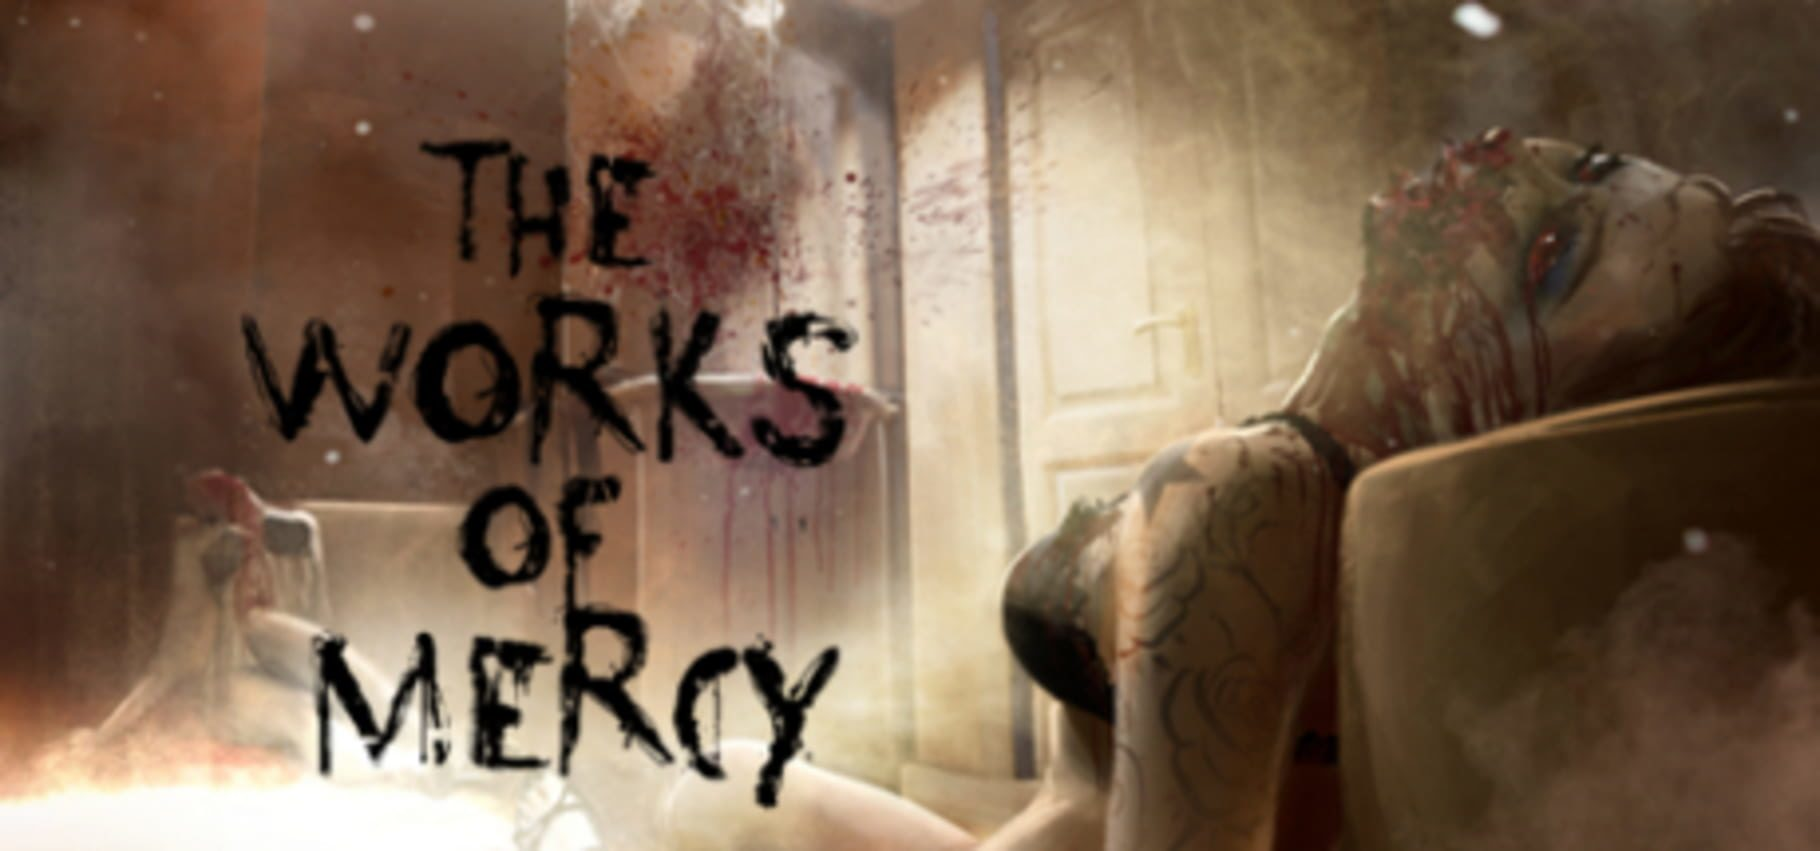 buy The Works of Mercy cd key for all platform